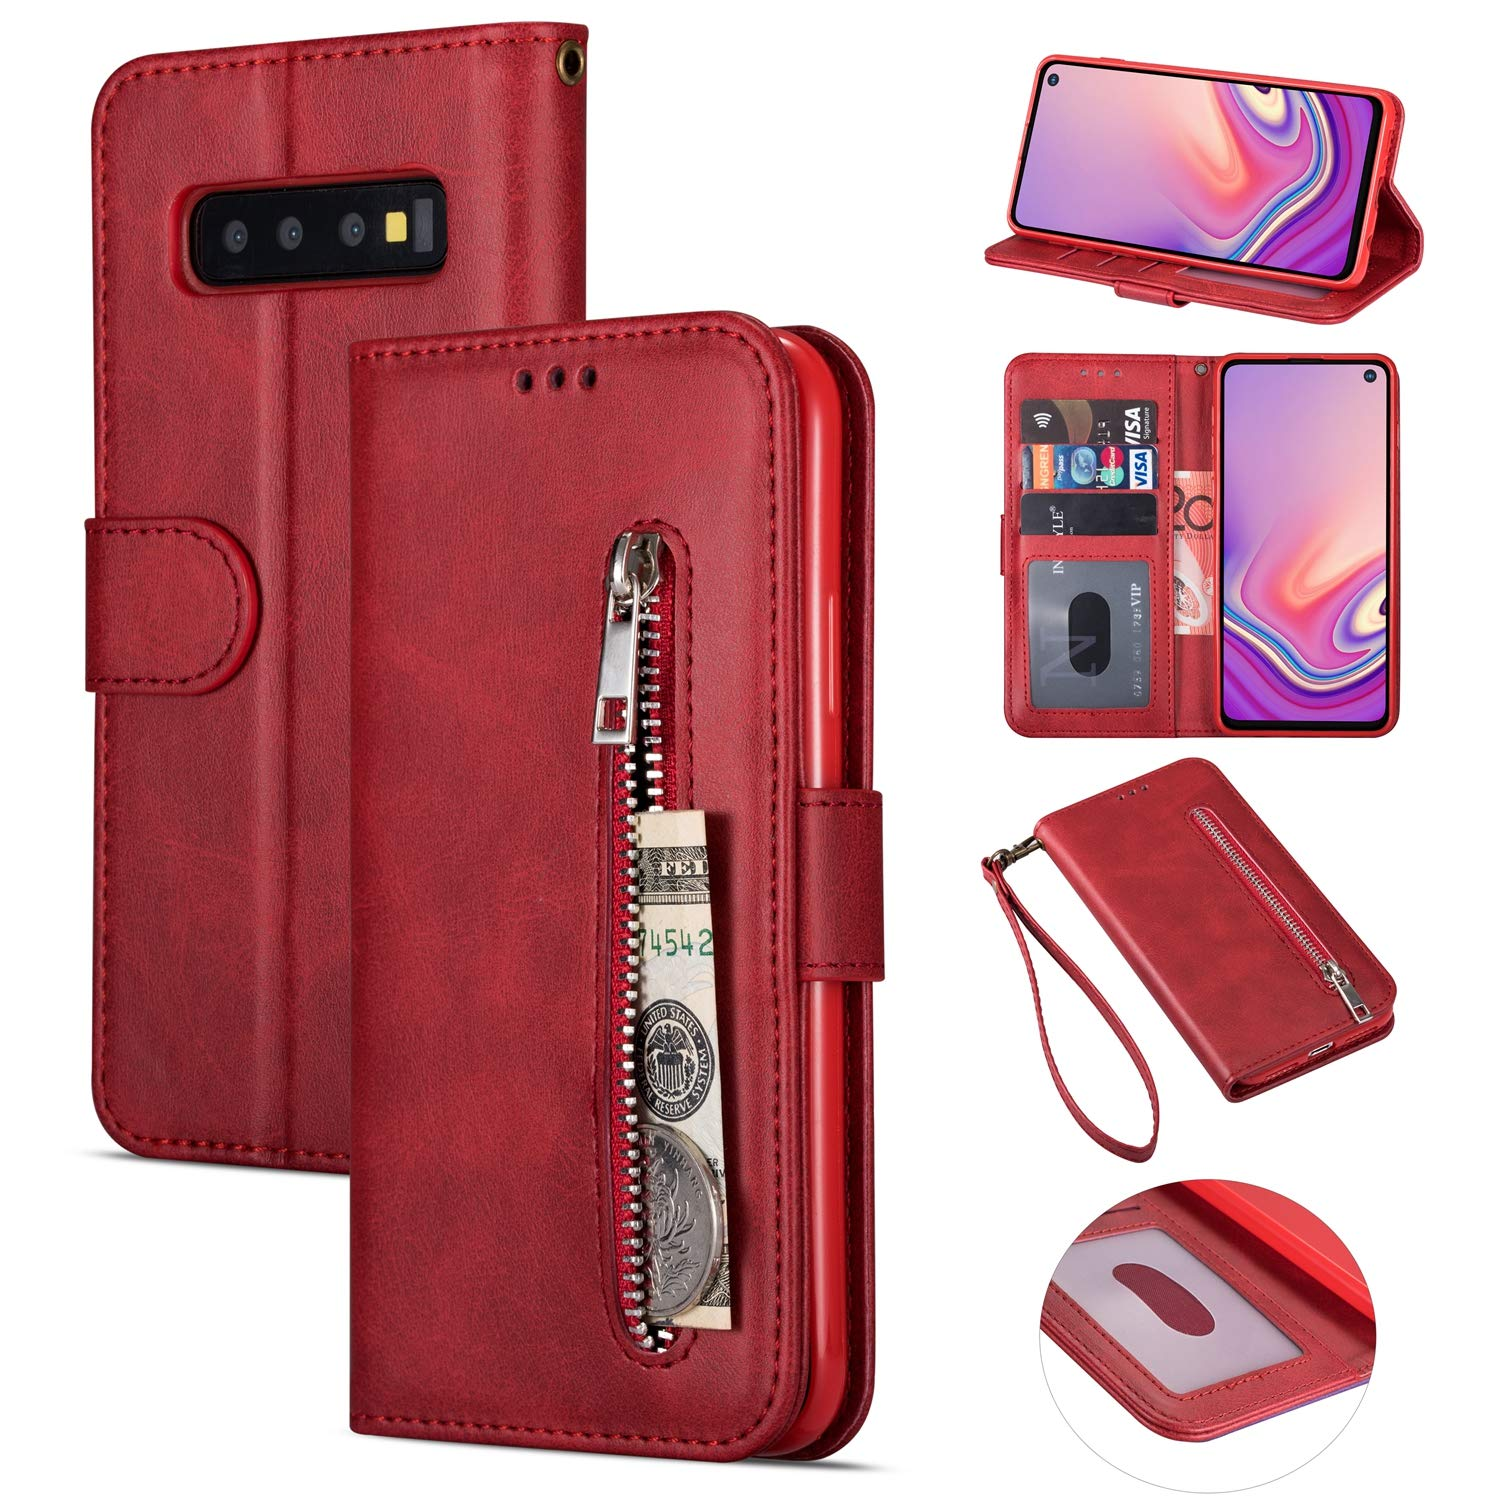 Zipper Wallet Case with Black Dual-use Pen for Samsung Galaxy S10,Aoucase Money Coin Pocket Card Holder Shock Resistant Strap Purse PU Leather Case for Samsung Galaxy S10 - Red by Aoucase